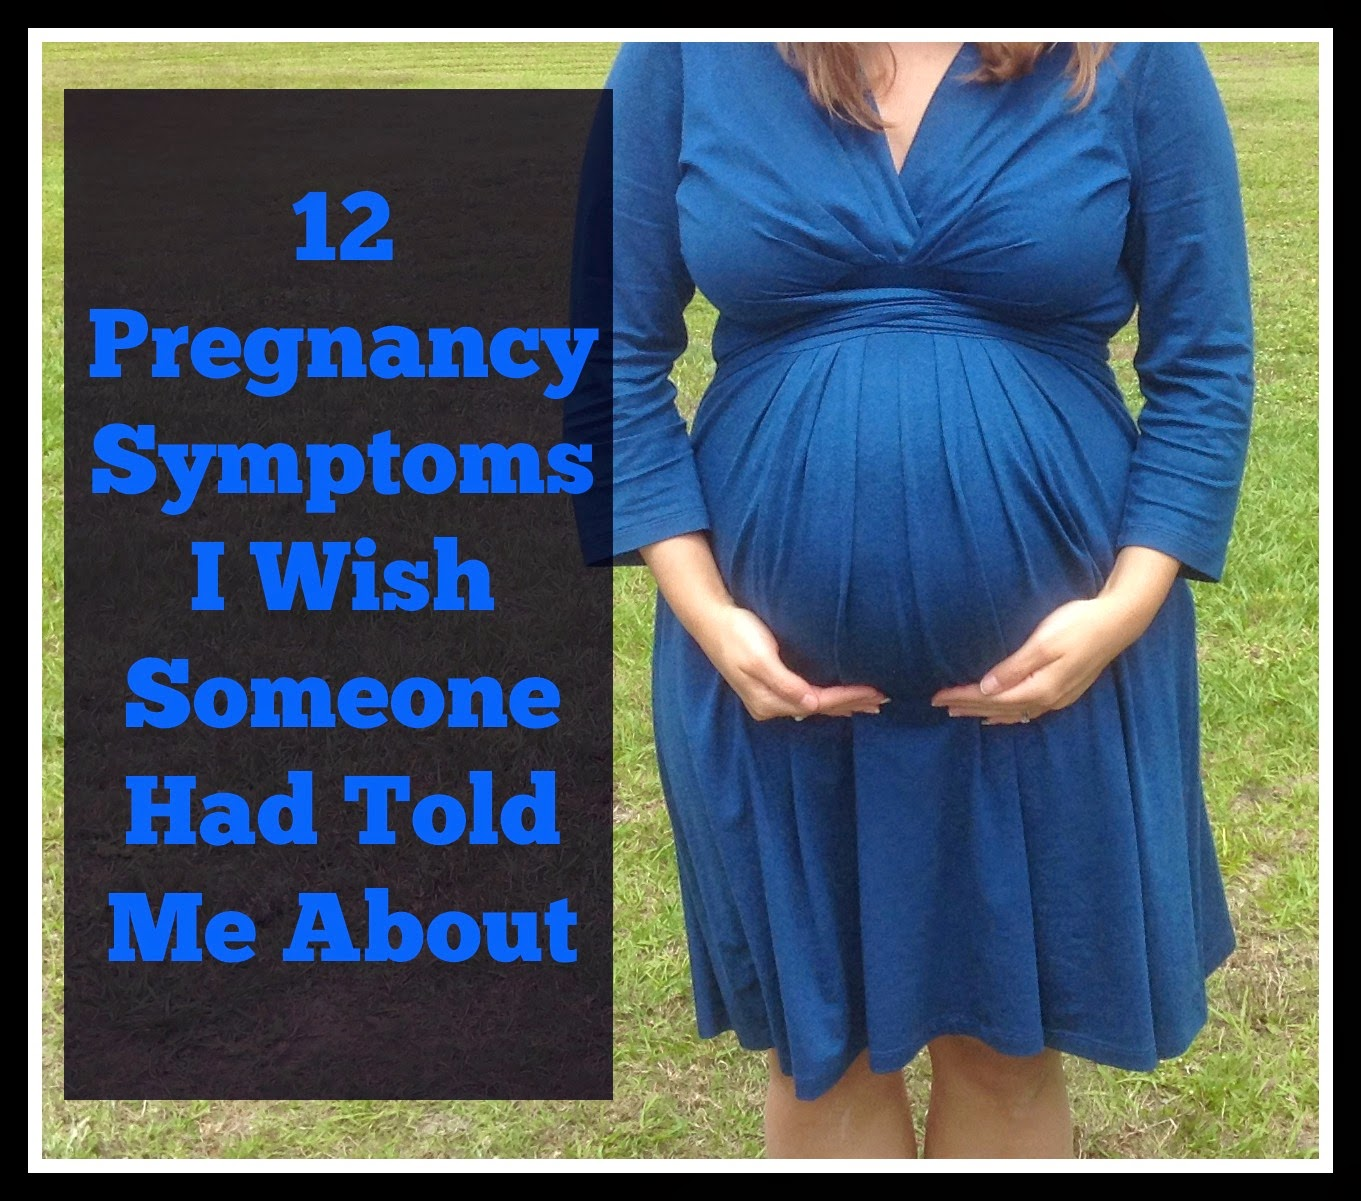 12 Pregnancy Symptoms I Wish Someone Had Told Me About